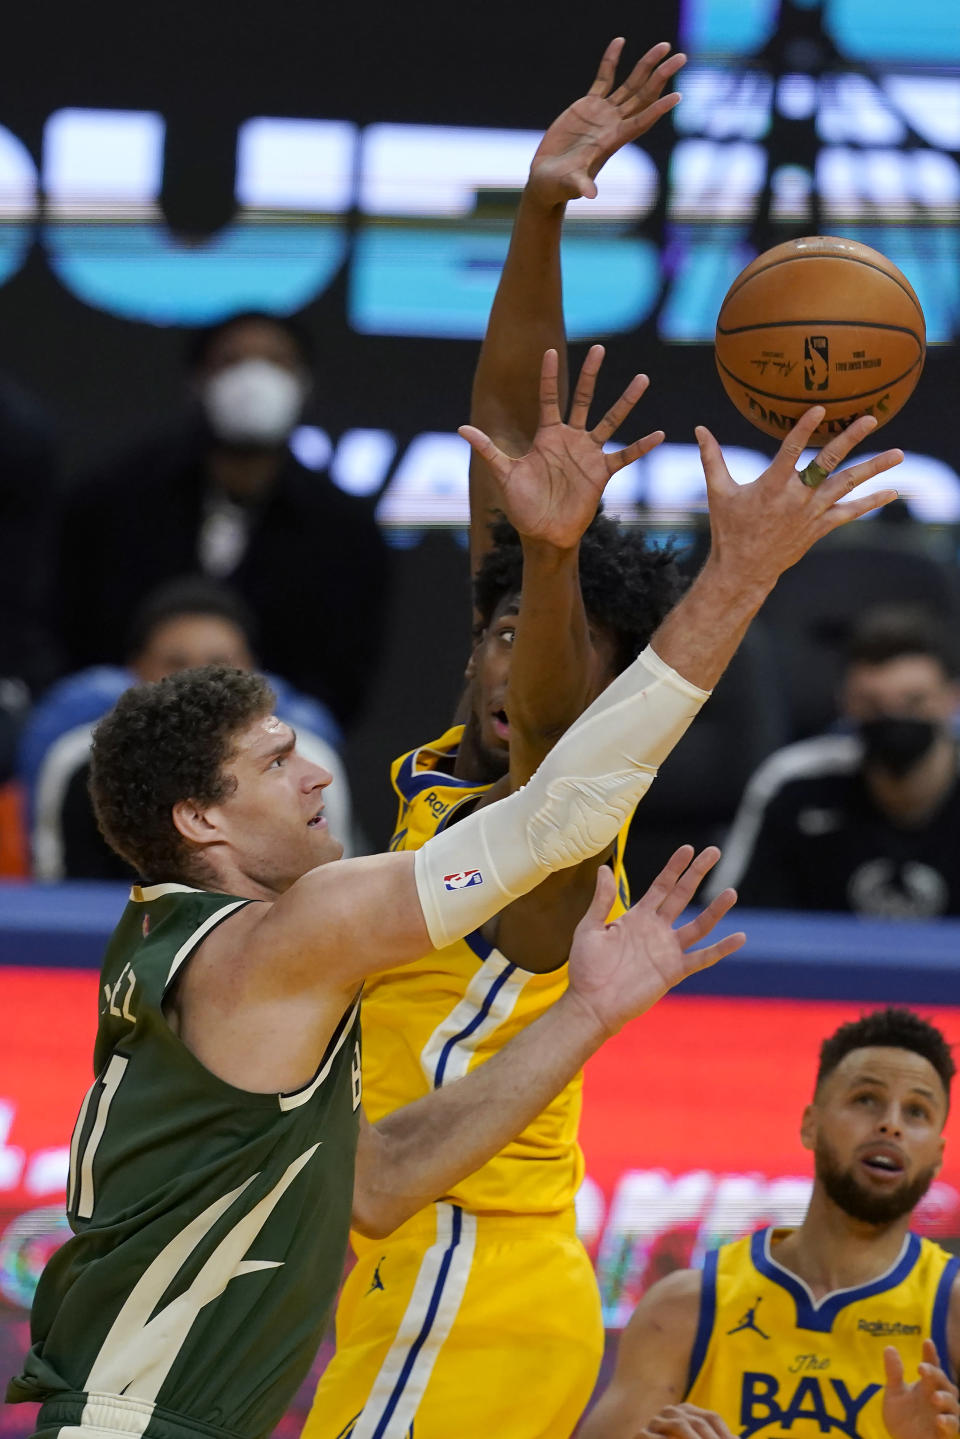 Milwaukee Bucks center Brook Lopez, left, shoots against Golden State Warriors center James Wiseman during the second half of an NBA basketball game in San Francisco, Tuesday, April 6, 2021. (AP Photo/Jeff Chiu)